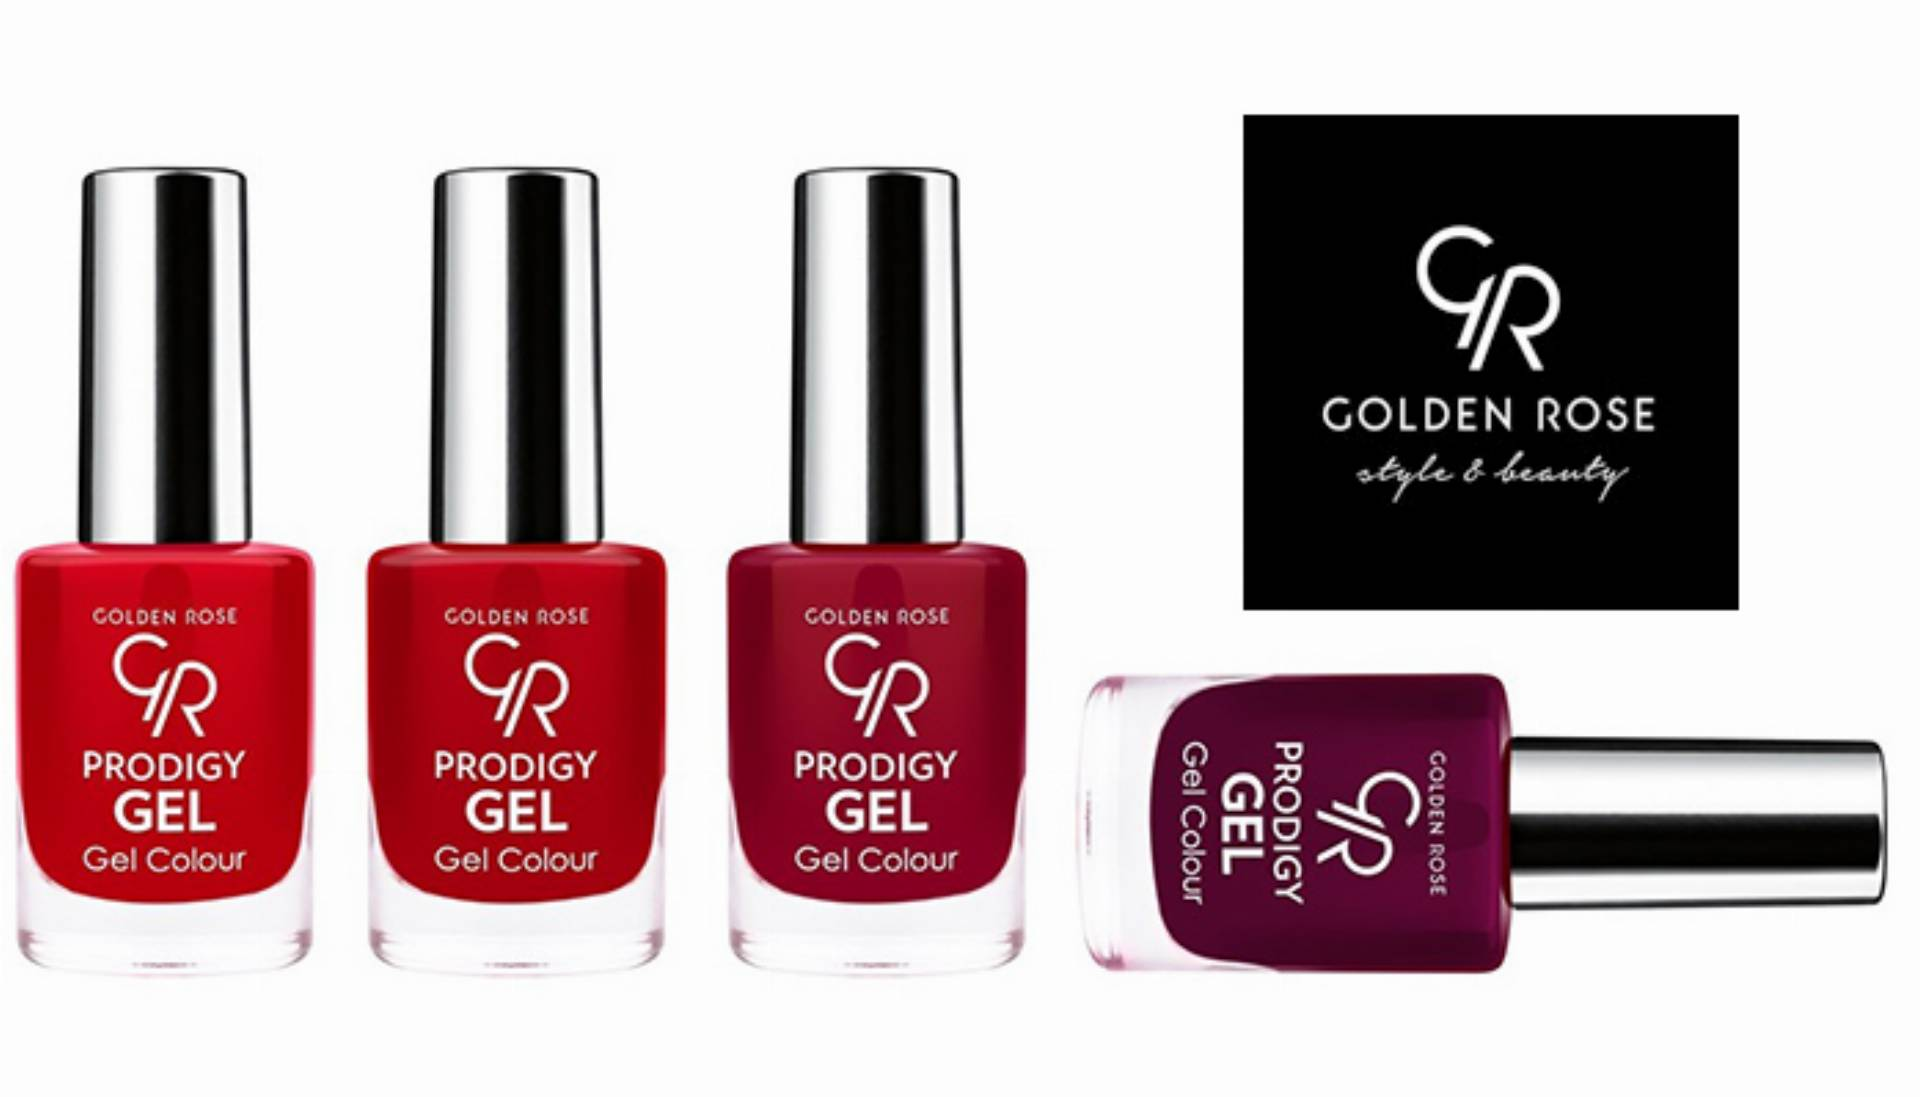 PRODIGY GEL DUO Golden Rose